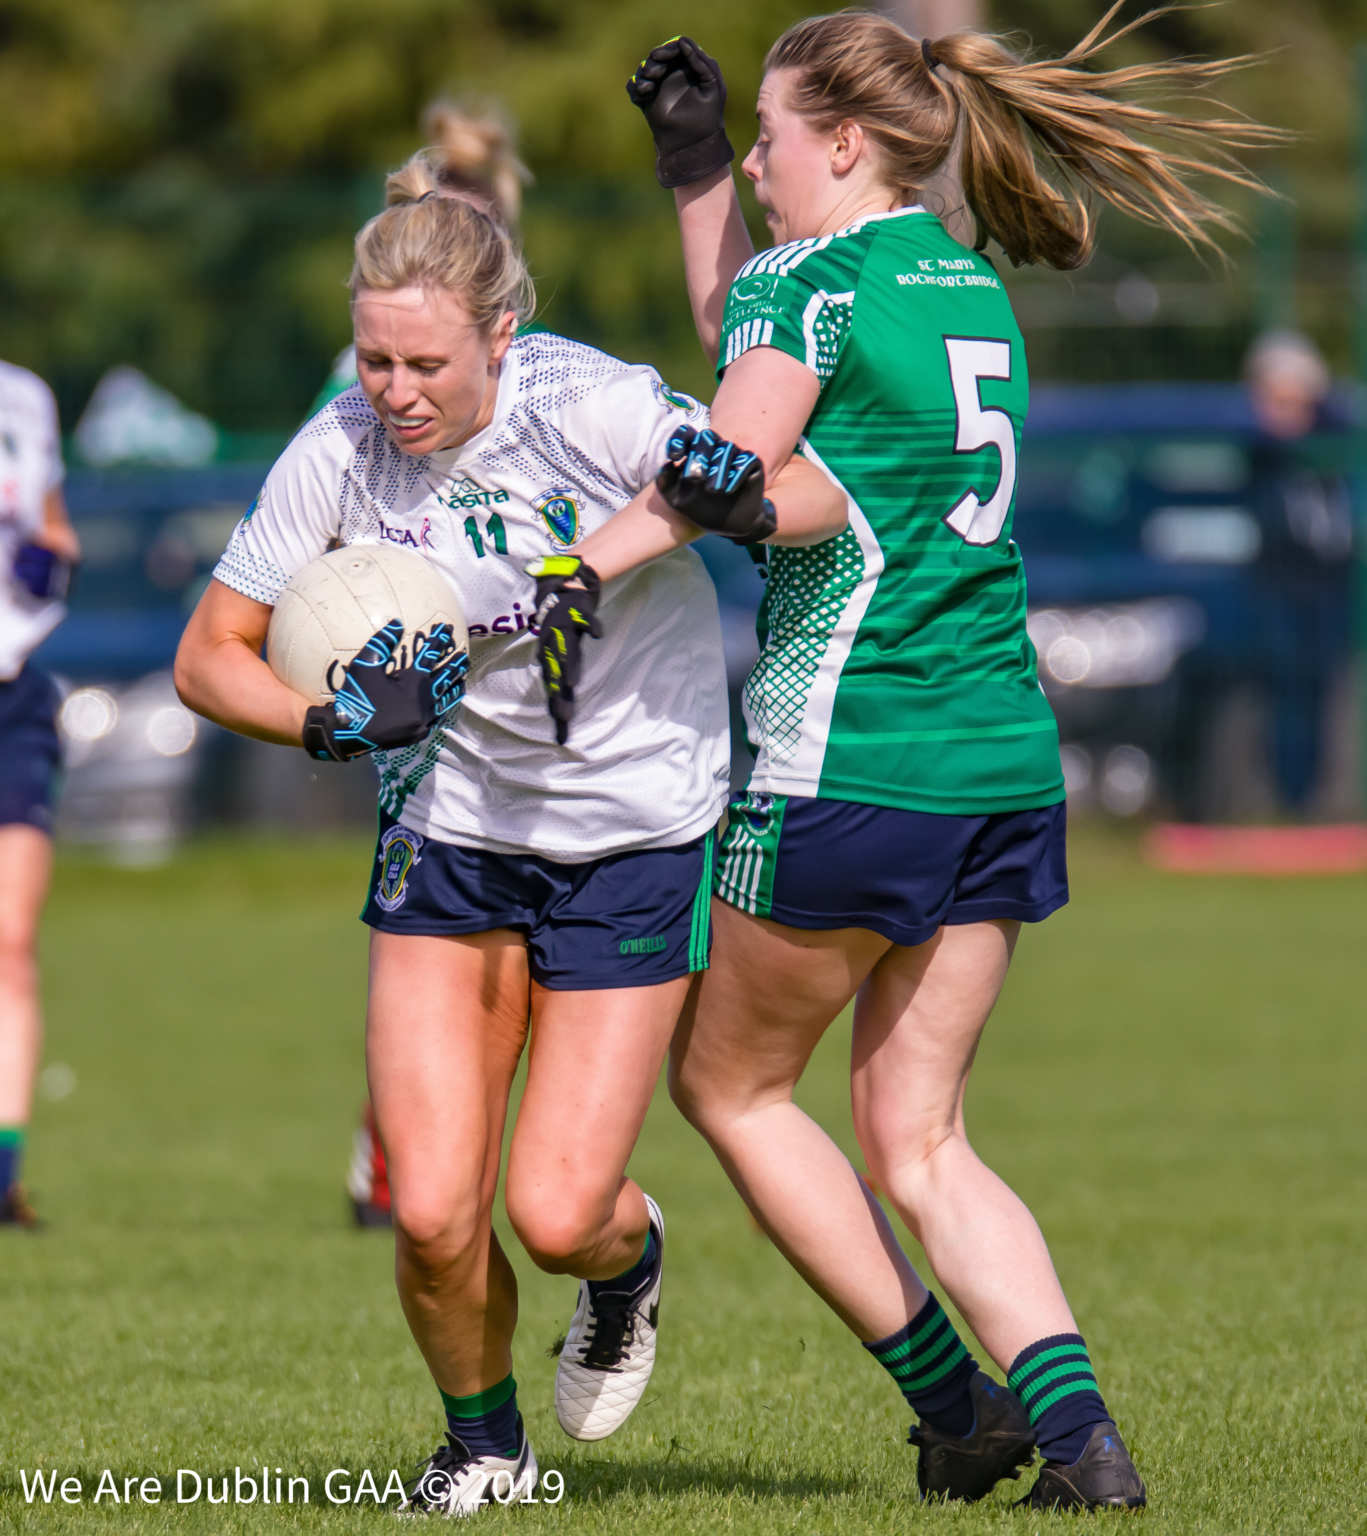 Foxrock Cabinteely number 11 Fiona Claffey tries to break the tackle of Lisa Cully from St Mary's Rochfortbridge during their Leinster Senior club championship game.